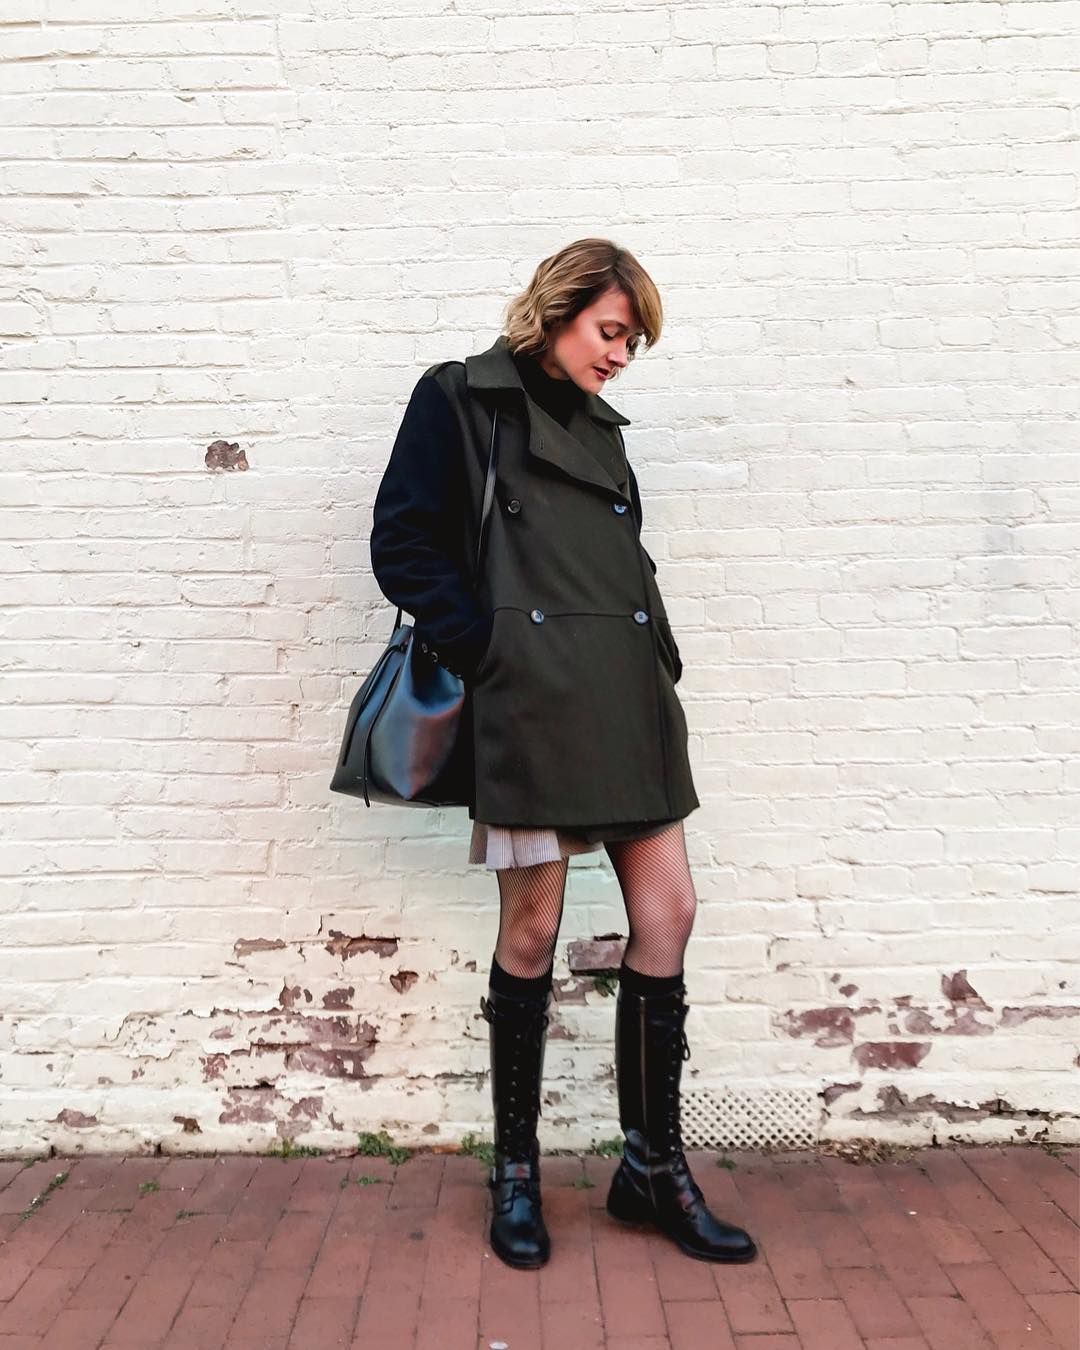 Mango coat and DKNY combat boots